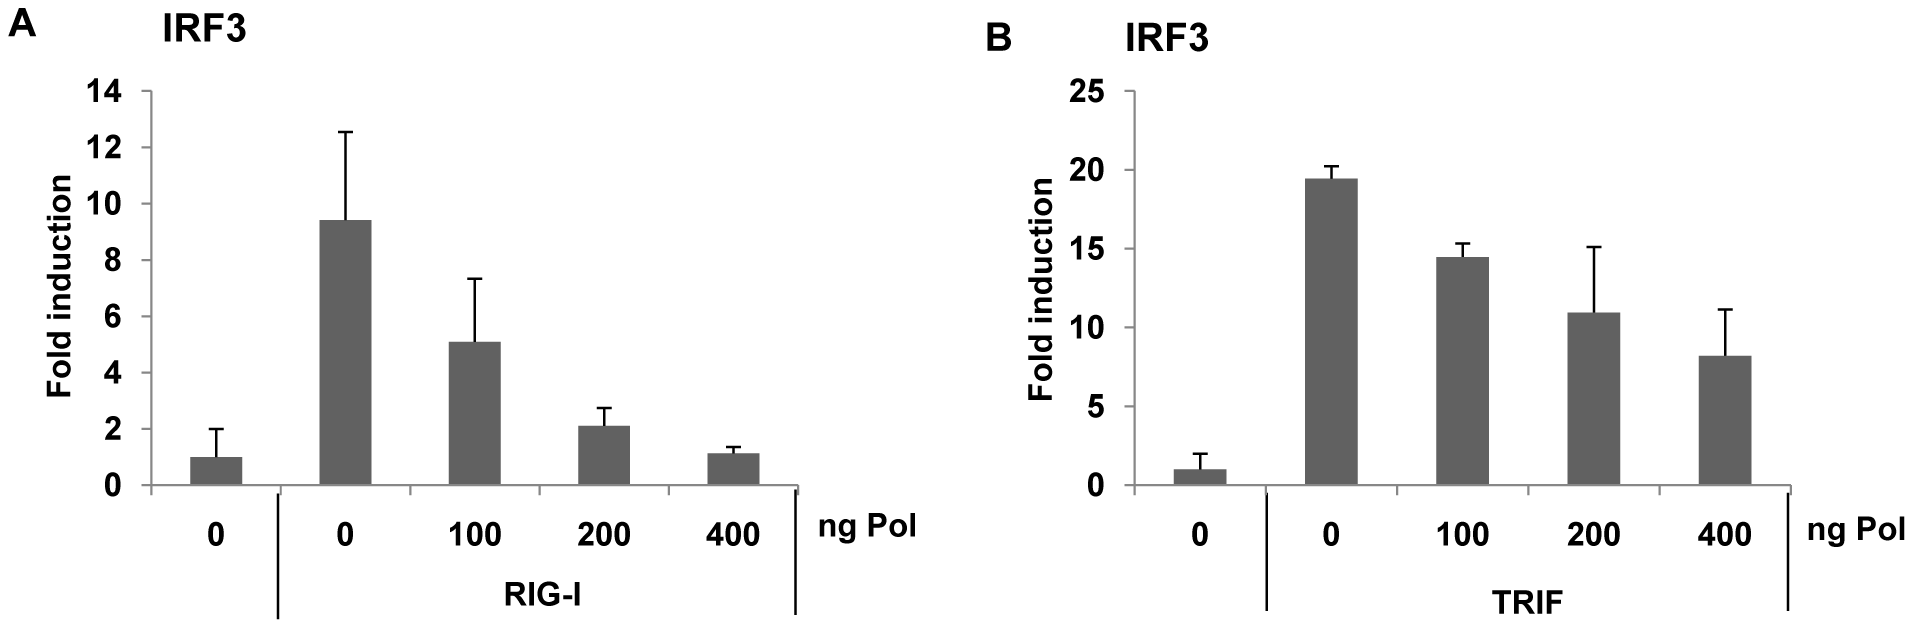 HBV Pol inhibits both RIG-I- and TRIF-induced IRF3 activation.